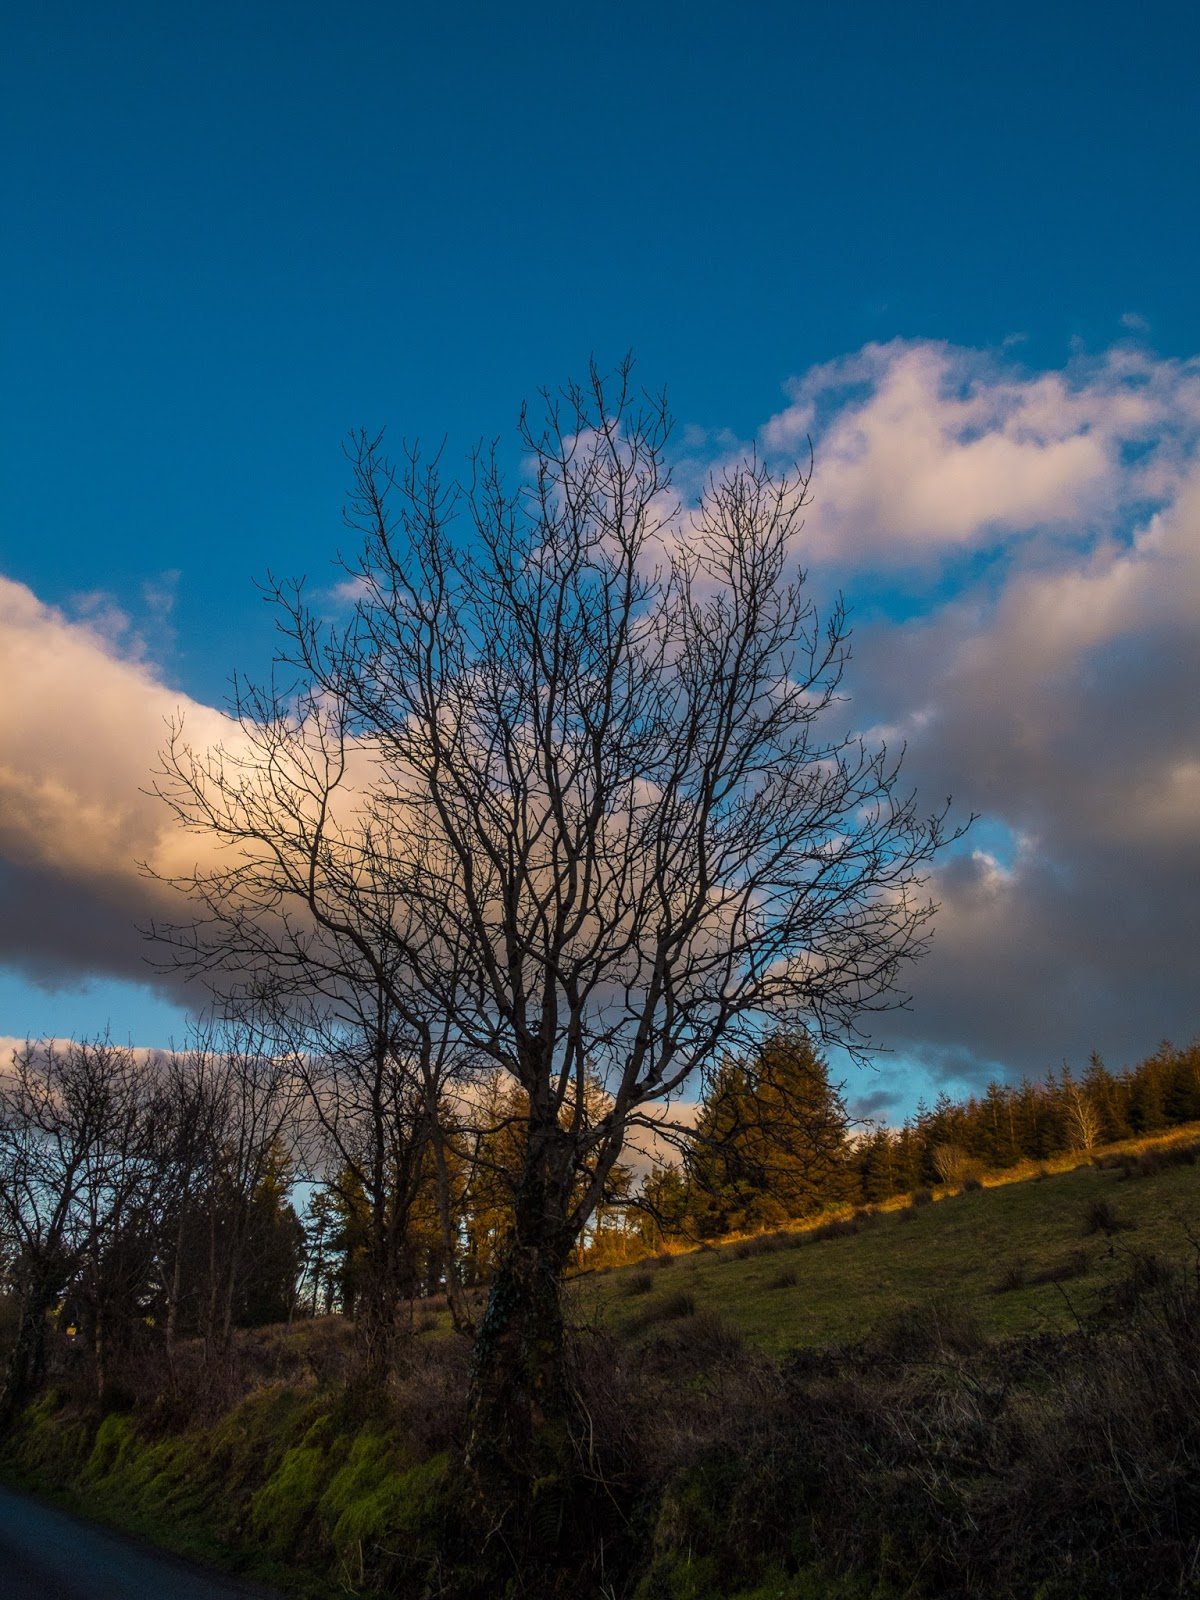 View of a mountain side at sunset with clouds and tree branches.